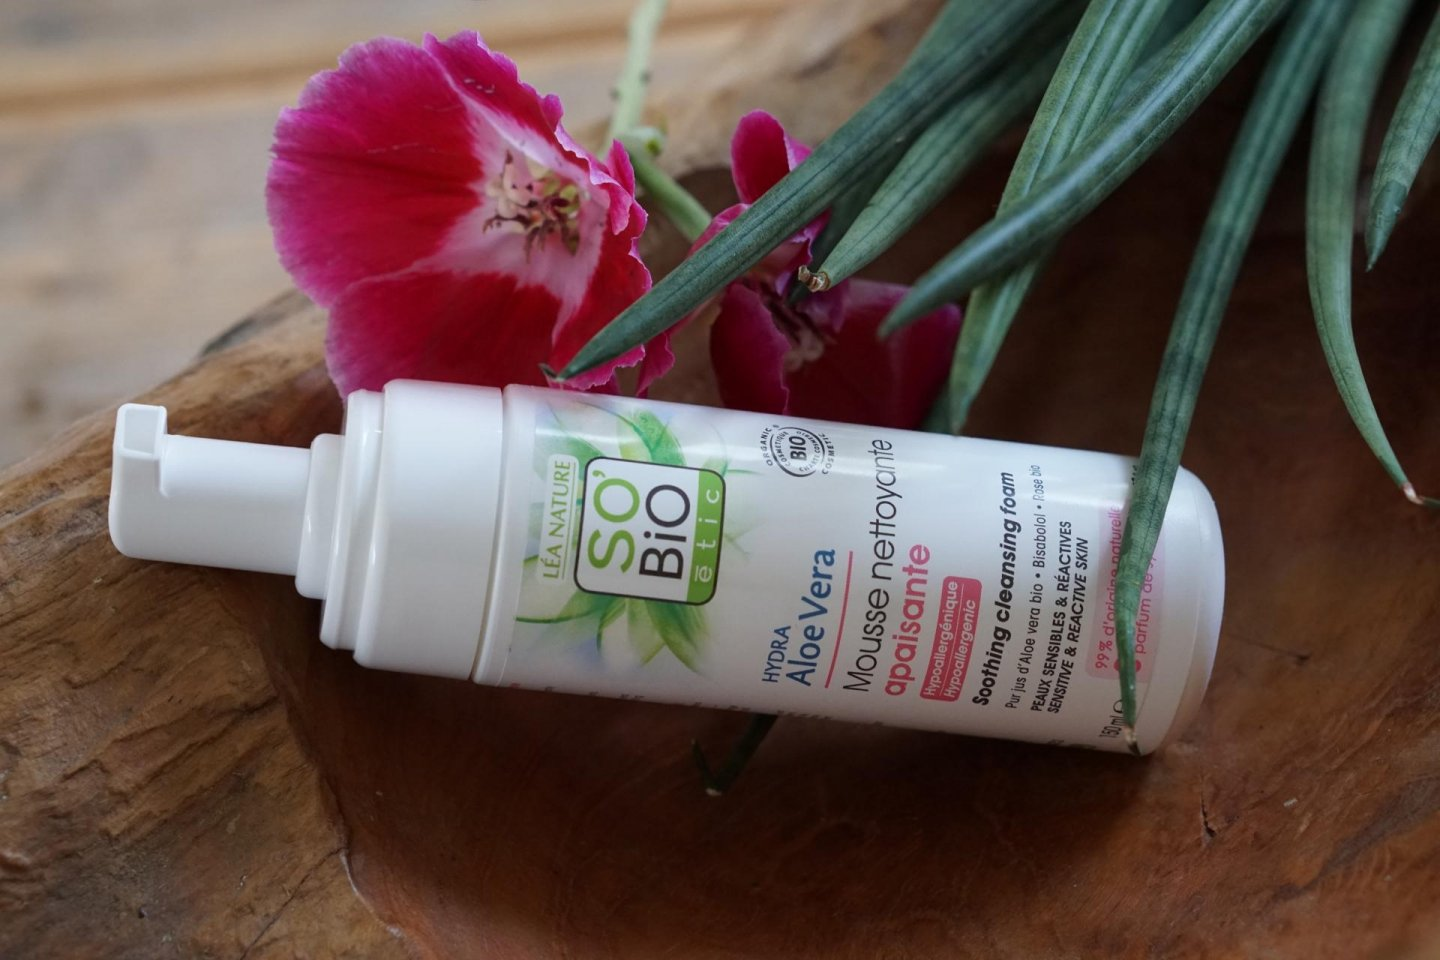 review SO'BIO ÉTIC Soothing cleansin